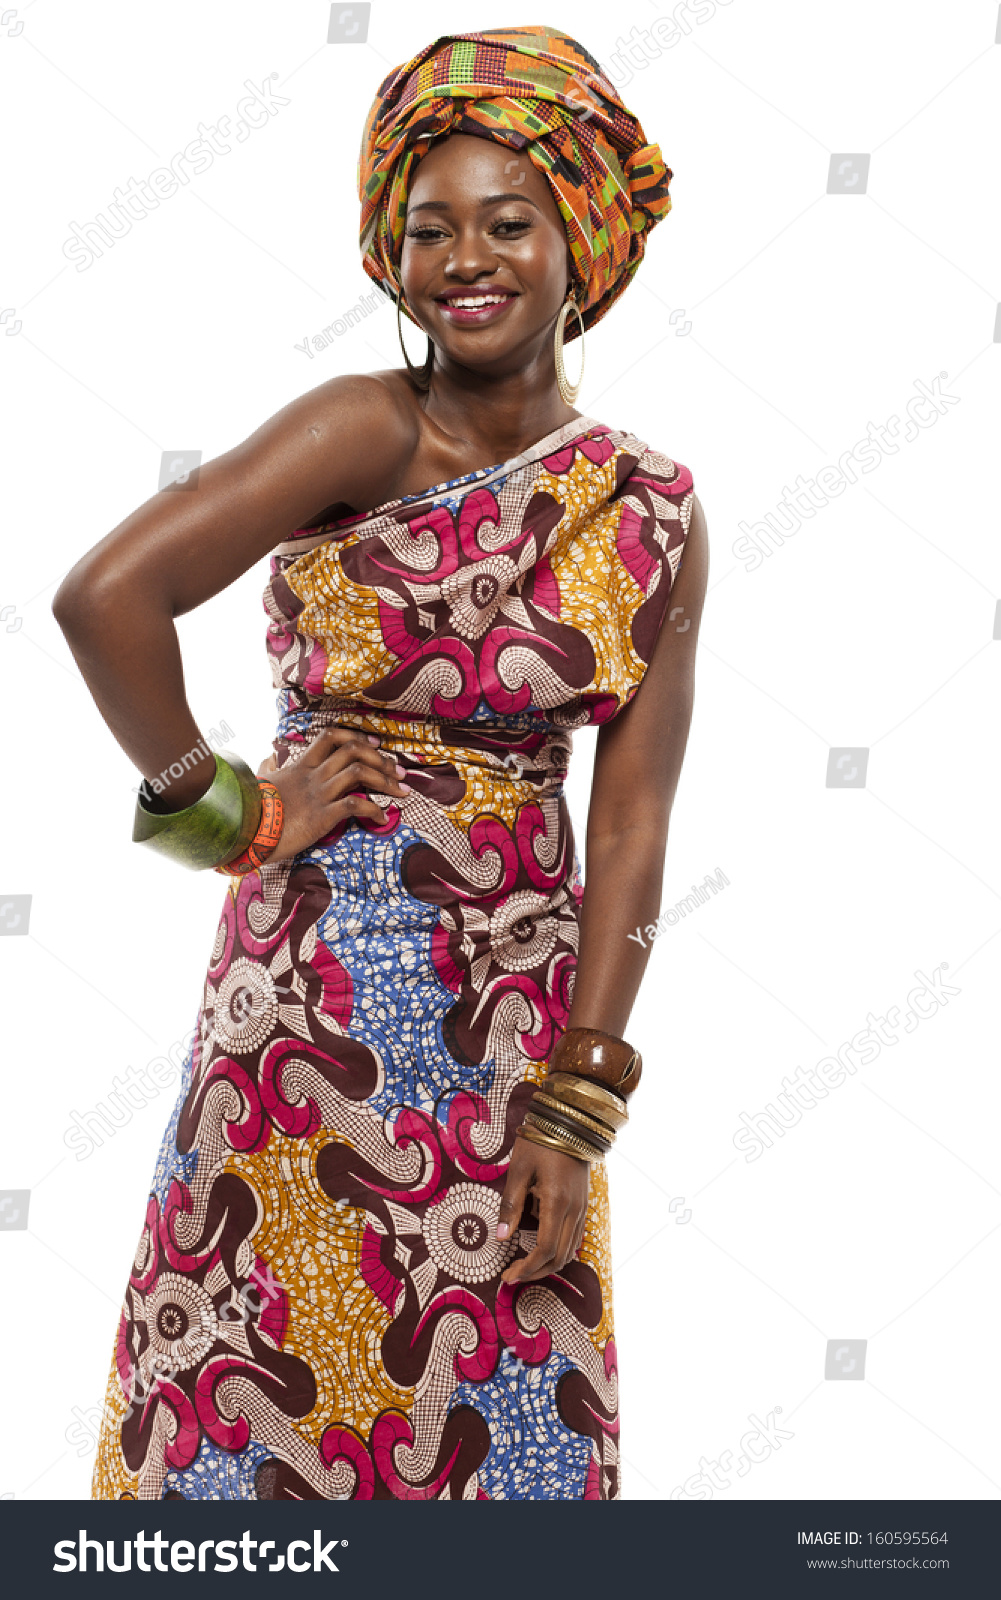 Young beautiful african fashion model traditional stock photo 160595564 shutterstock - Dressing modellen ...